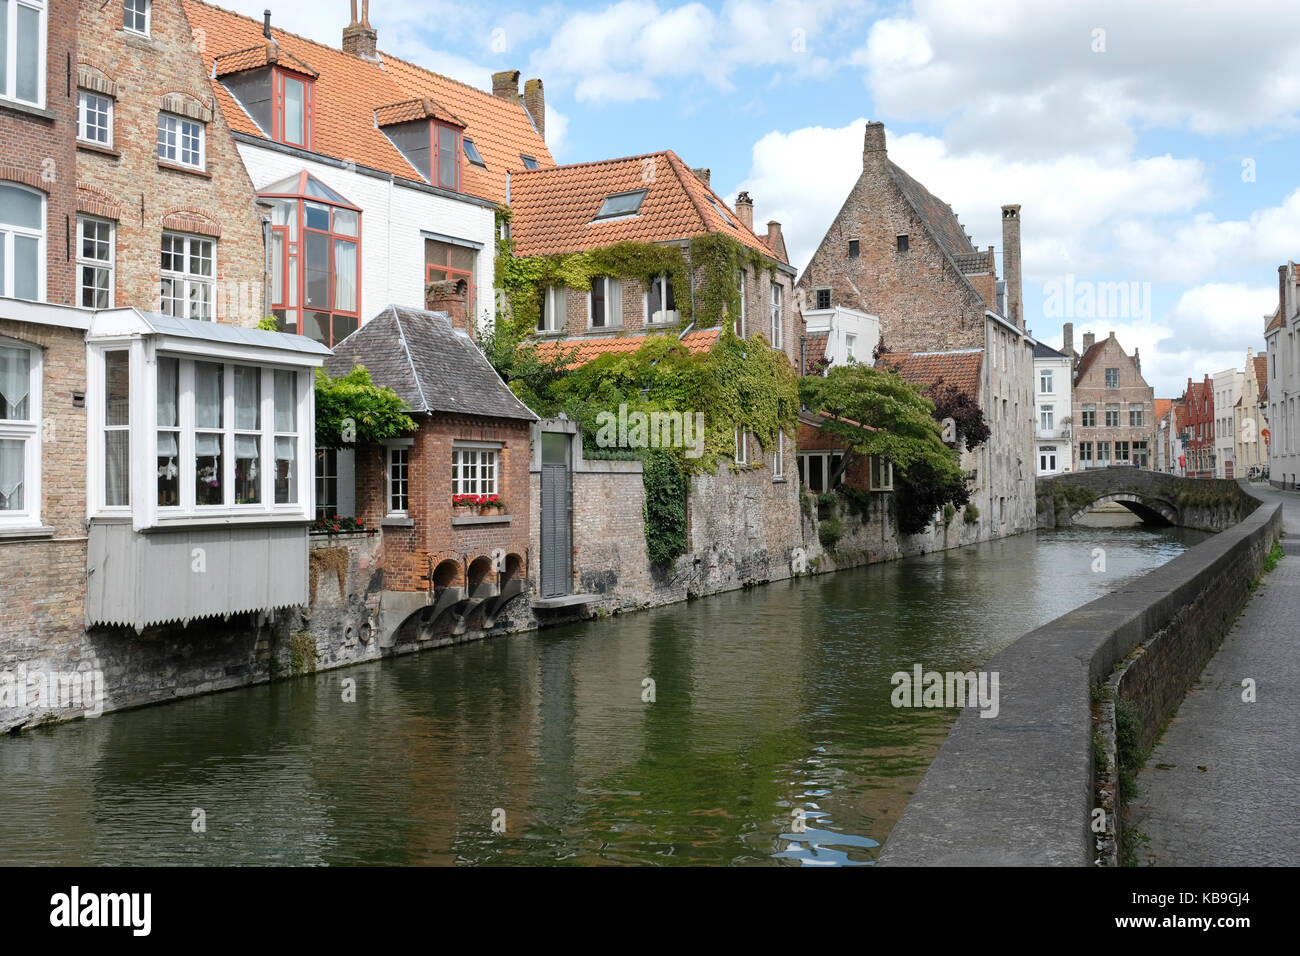 Typical canal scene in Bruges / Brugge, Belgium showing medieval buildings overlooking the water - Stock Image